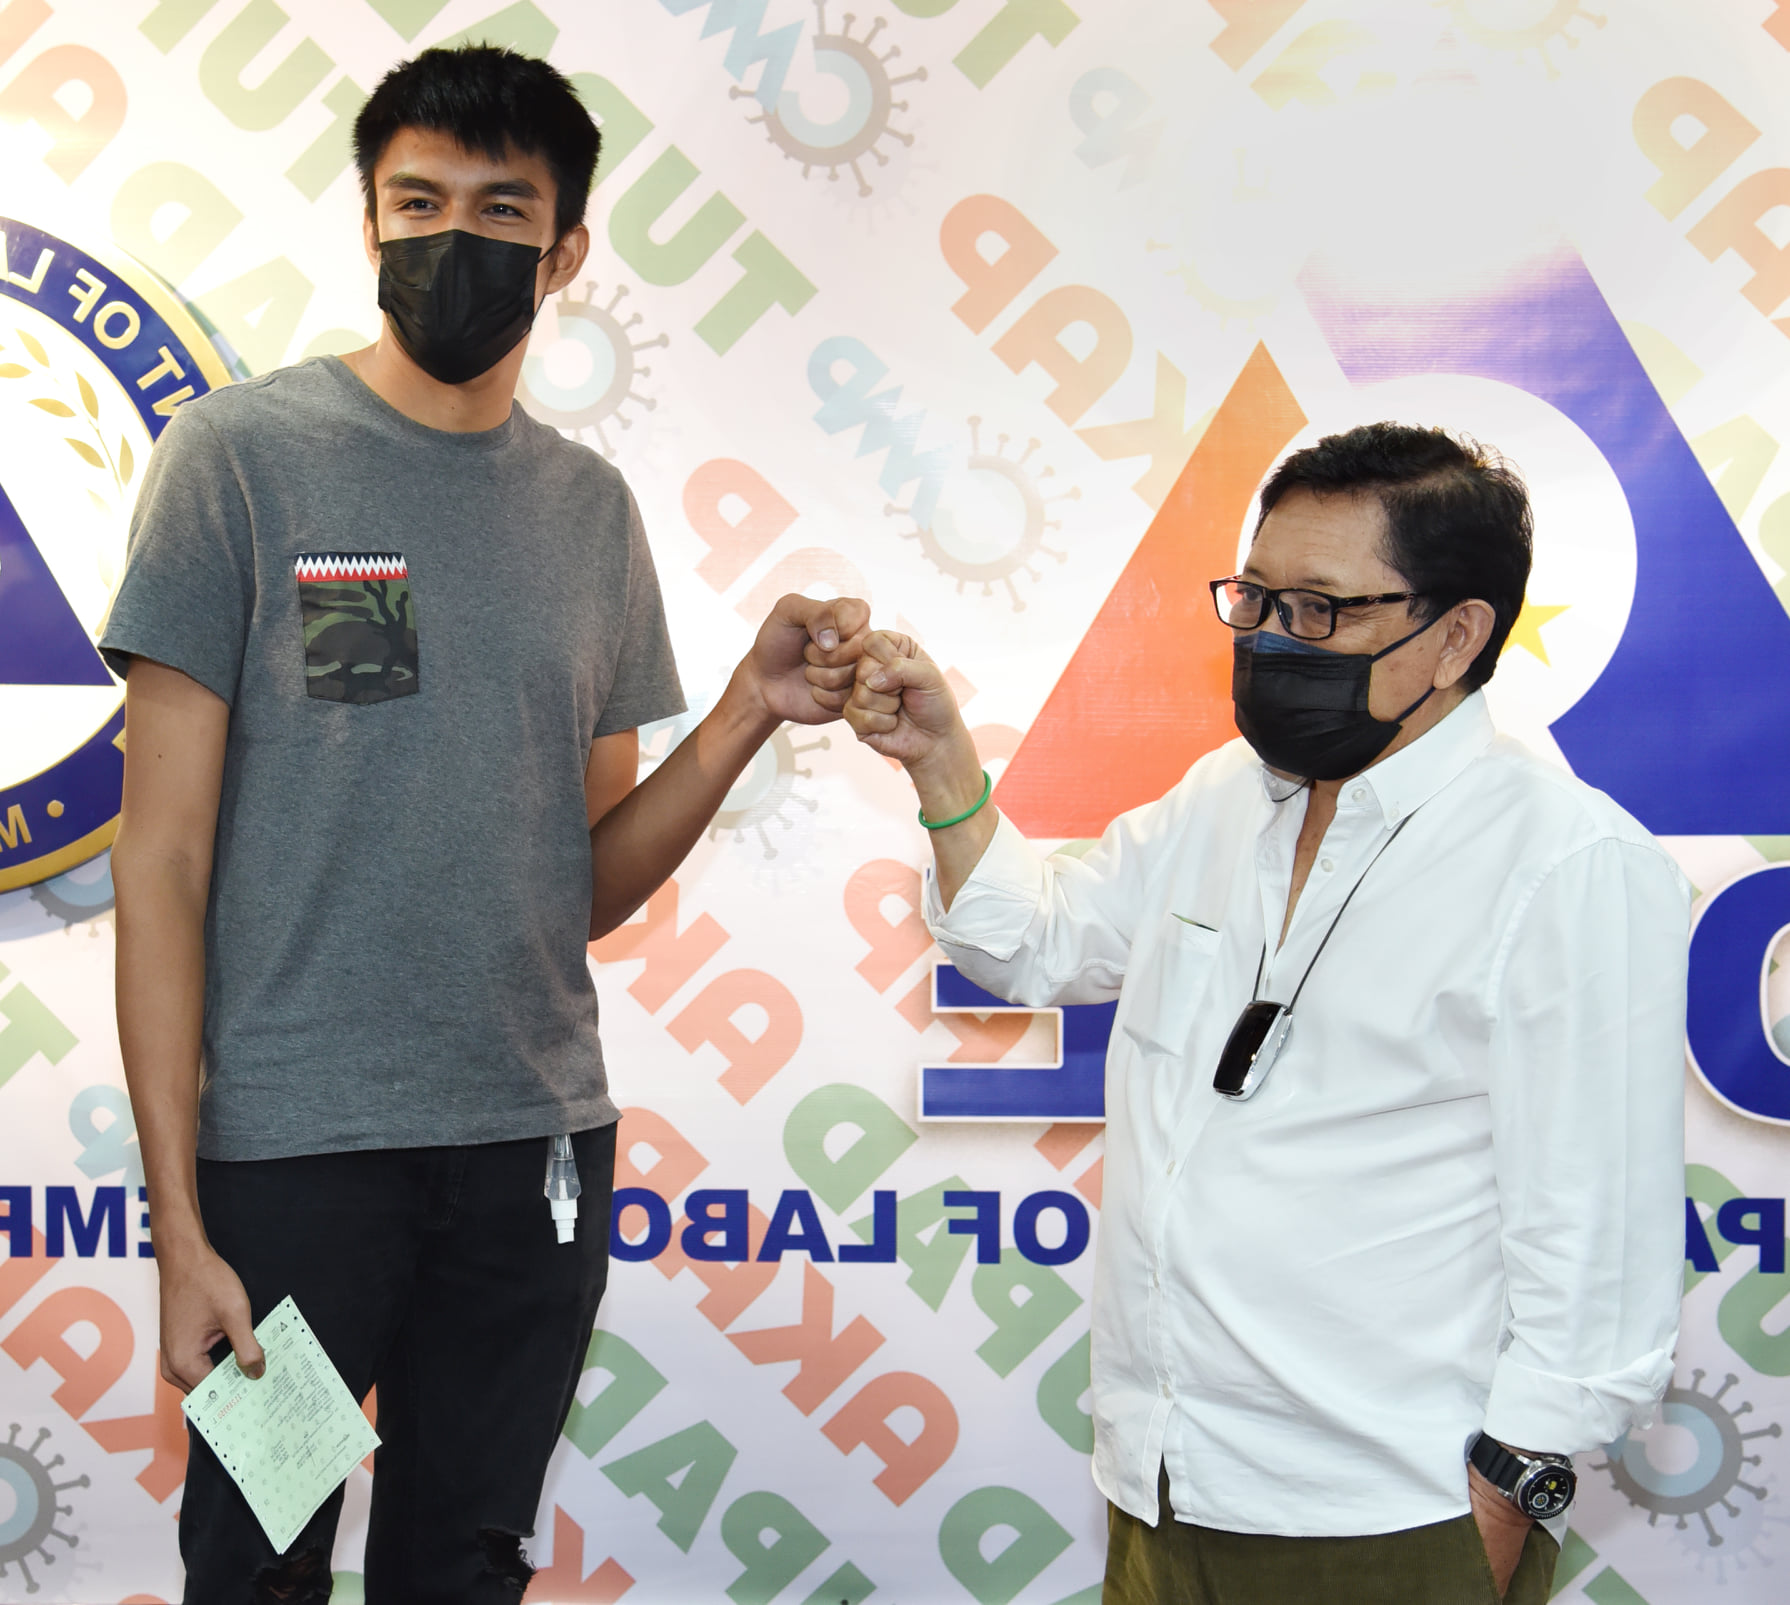 Department of Labor and Employment Secretary Silvestre 'Bebot' Bello III awards the overseas employment certificate (OEC) to Gilas Pilipinas forward Kemark Carino (right).  [photo from DOLE Facebook]